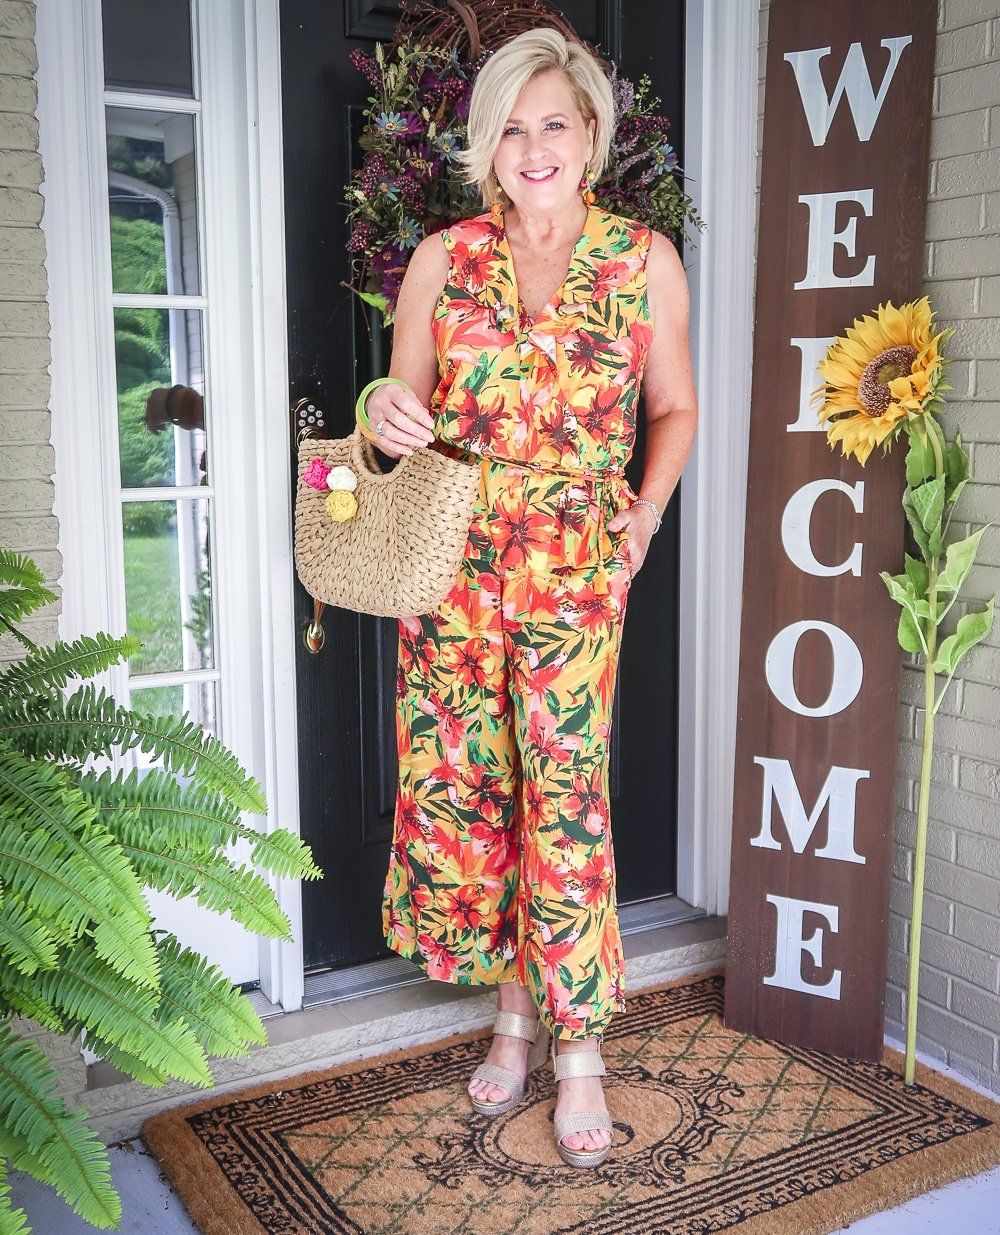 Fashion Blogger 50 Is Not Old is wearing a tropical ruffled peplum top, and a matching pant with gold espadrille wedges and a straw bag